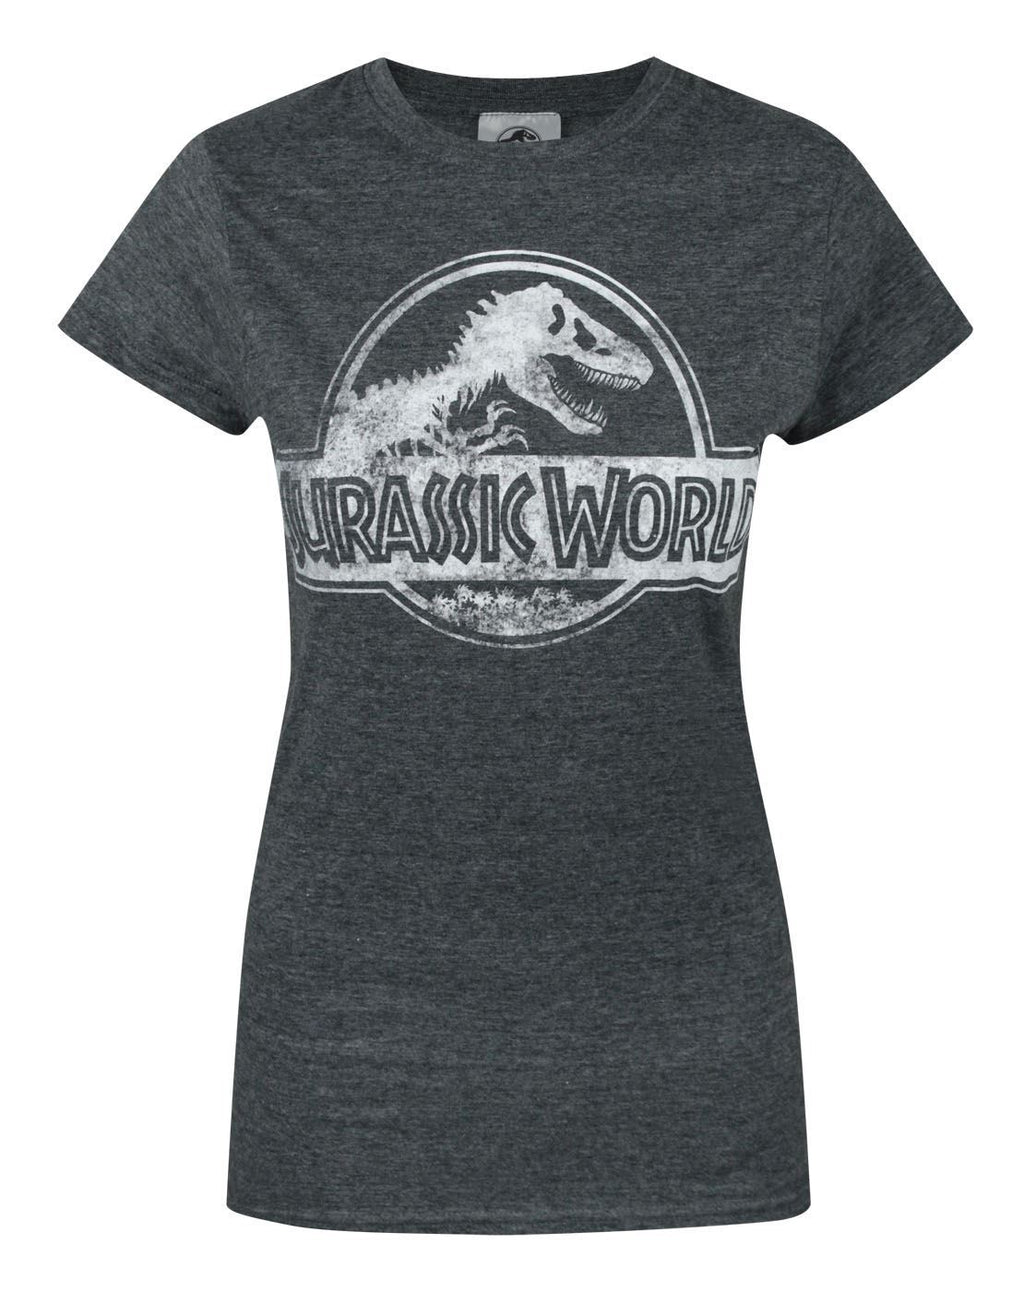 Jurassic World Distressed Logo Women's T-Shirt